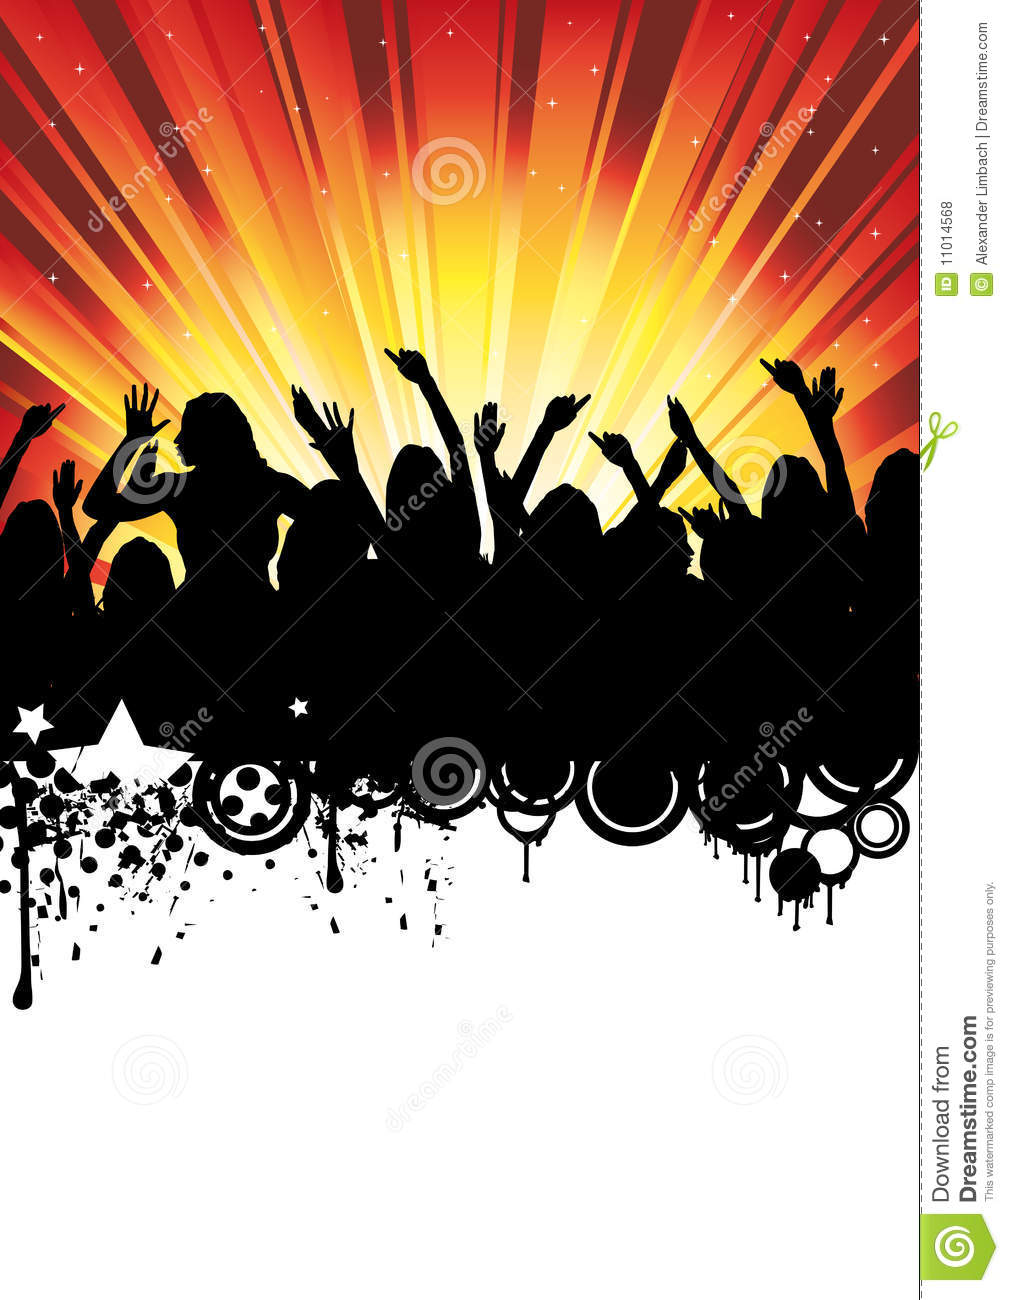 Disco Music Party Flyer Dancing People Royalty Free Stock Photos